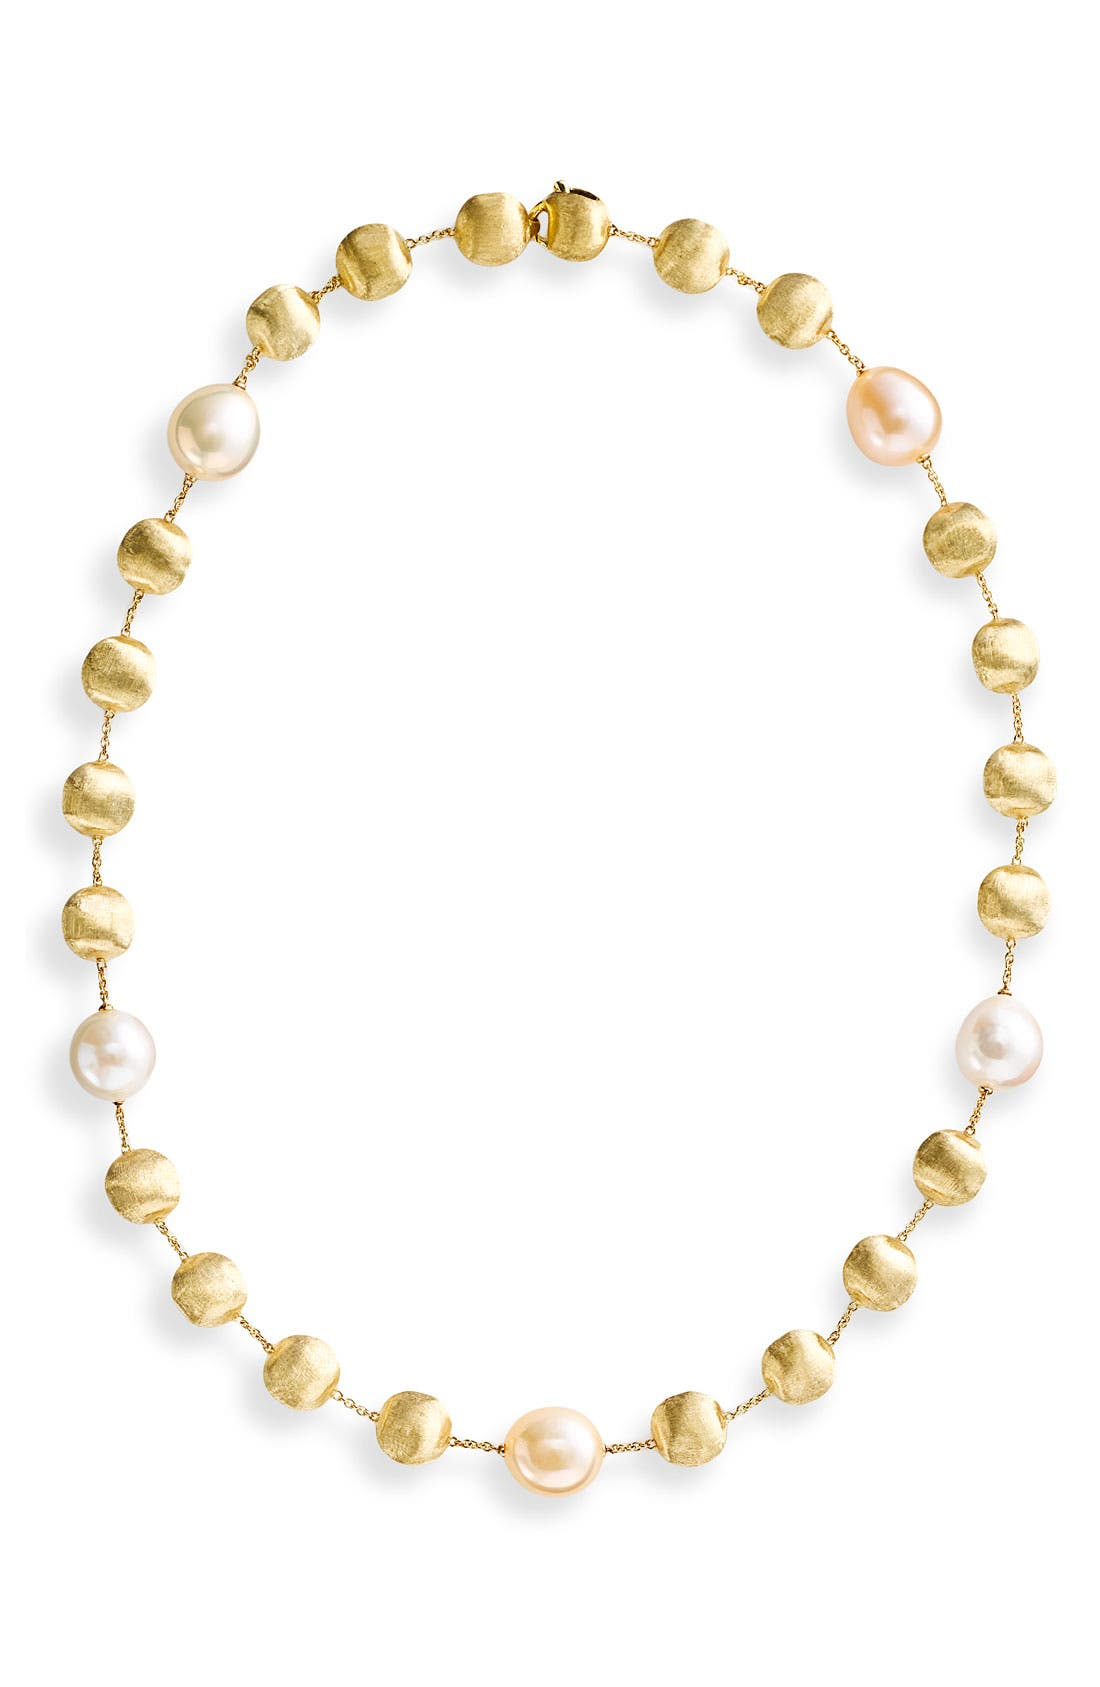 Alternate Image 1 Selected - Marco Bicego 'Africa' Gold & Diamond Necklace